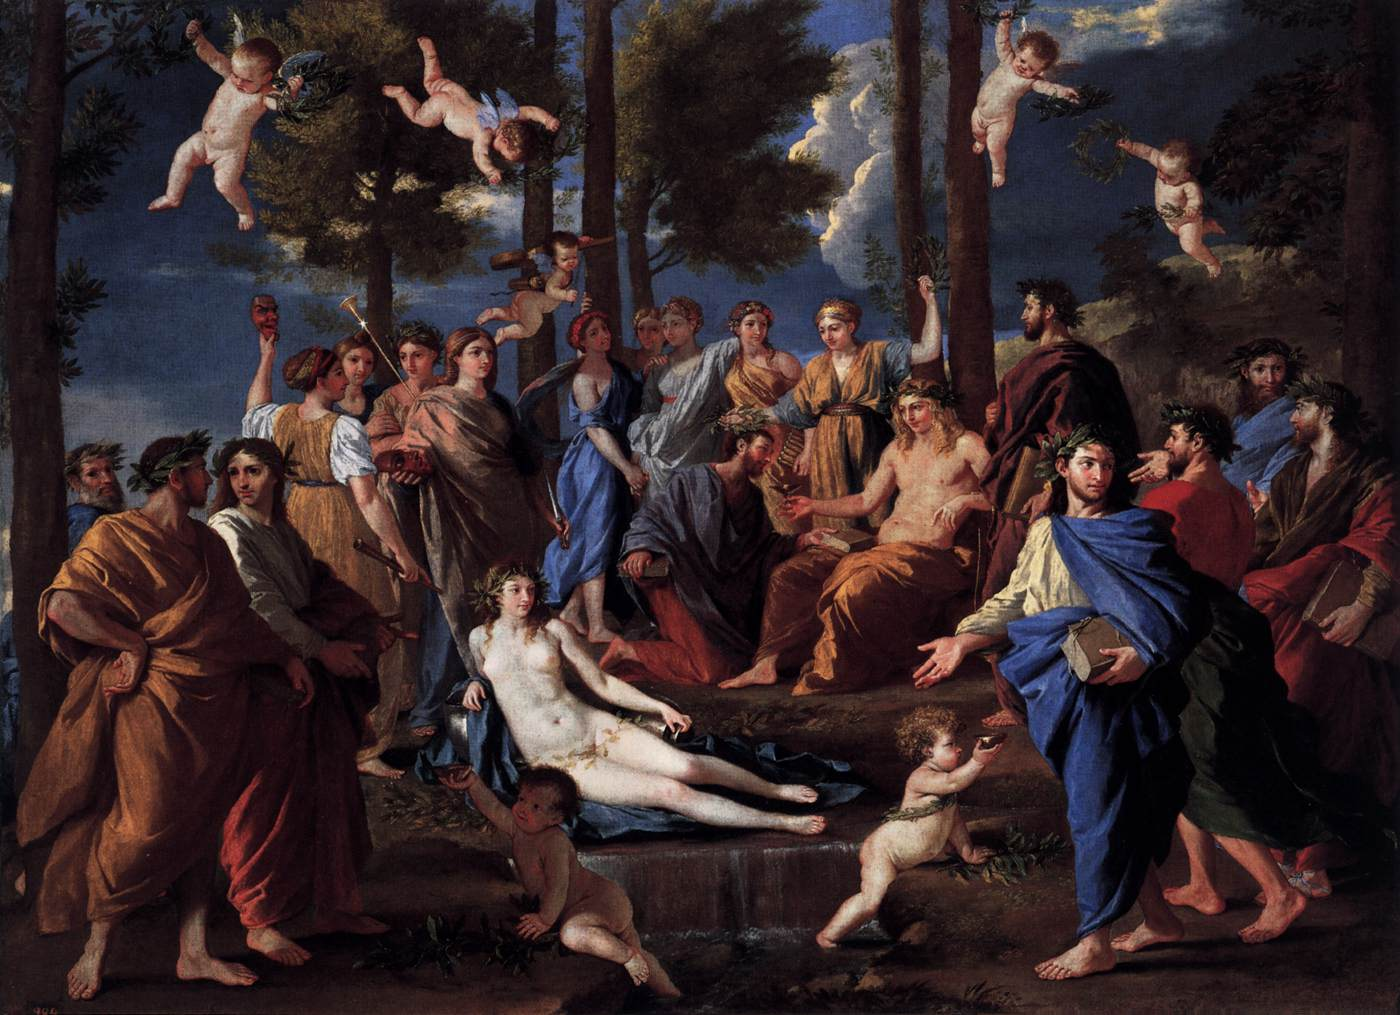 File:Nicolas Poussin - Apollo and the Muses (Parnassus) - WGA18307.jpg -  Wikimedia Commons